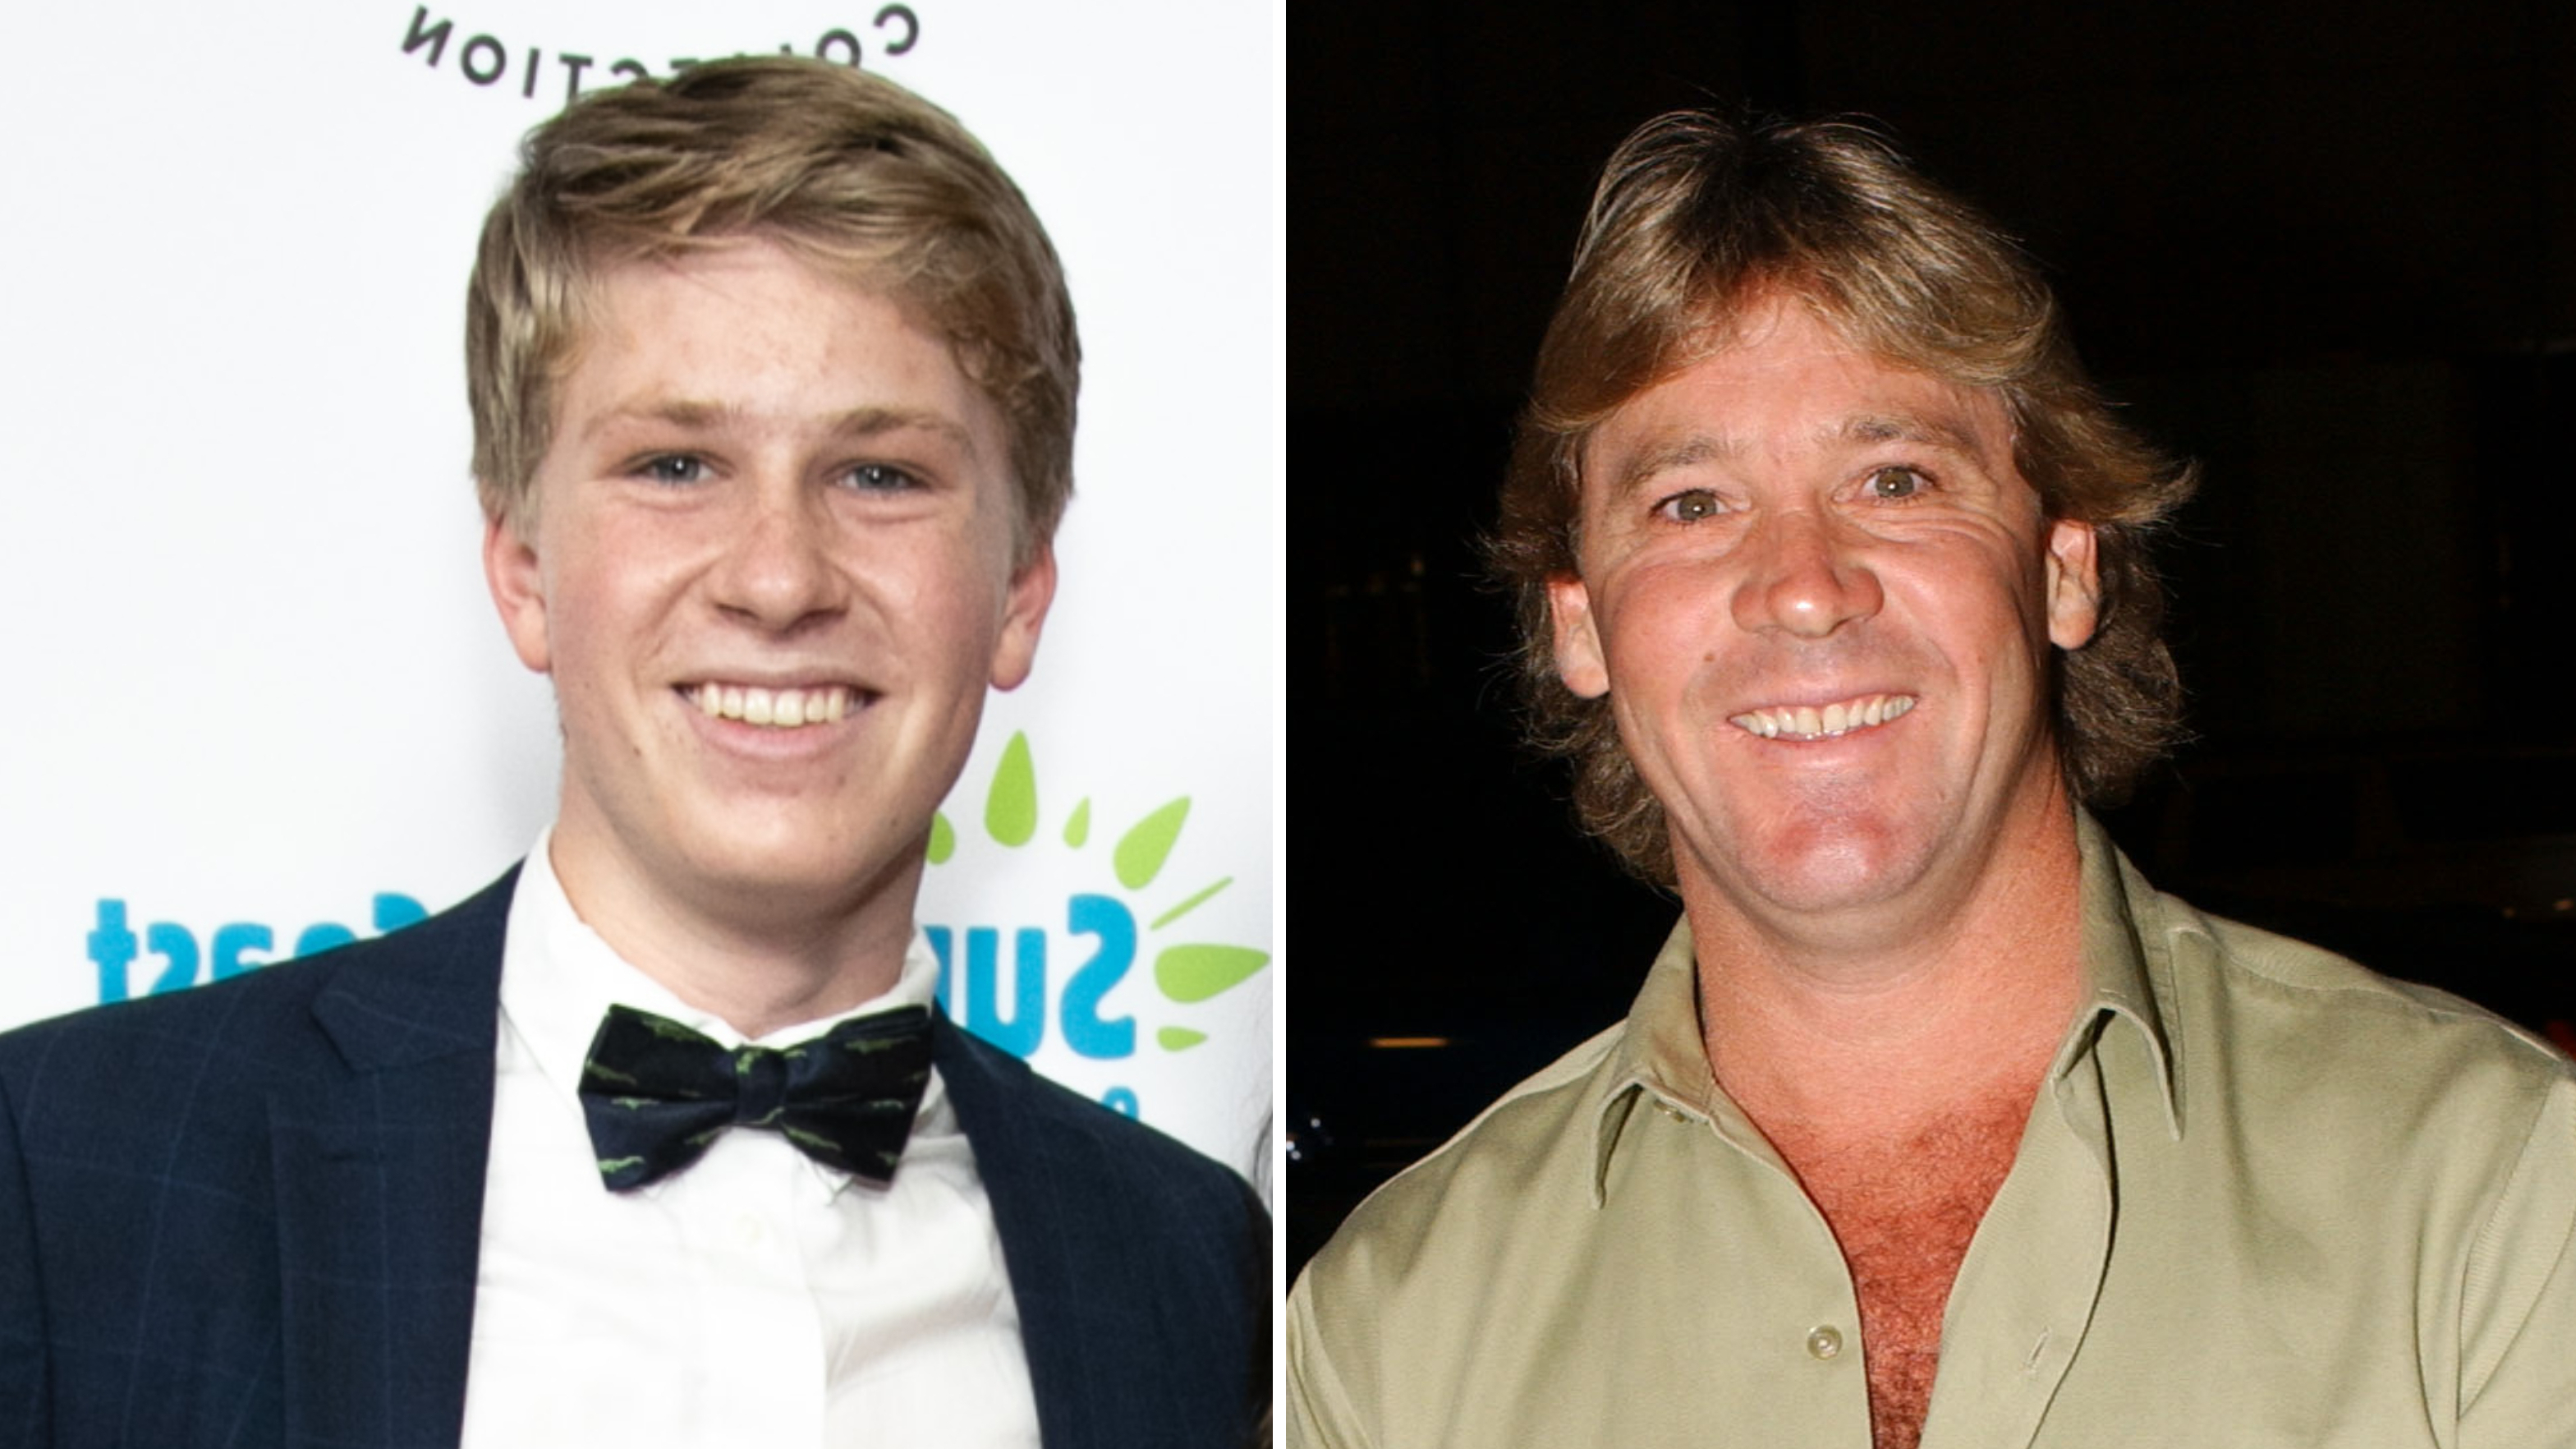 Steve Irwin And Son Robert Feed The Same Crocodile 15 Years Apart